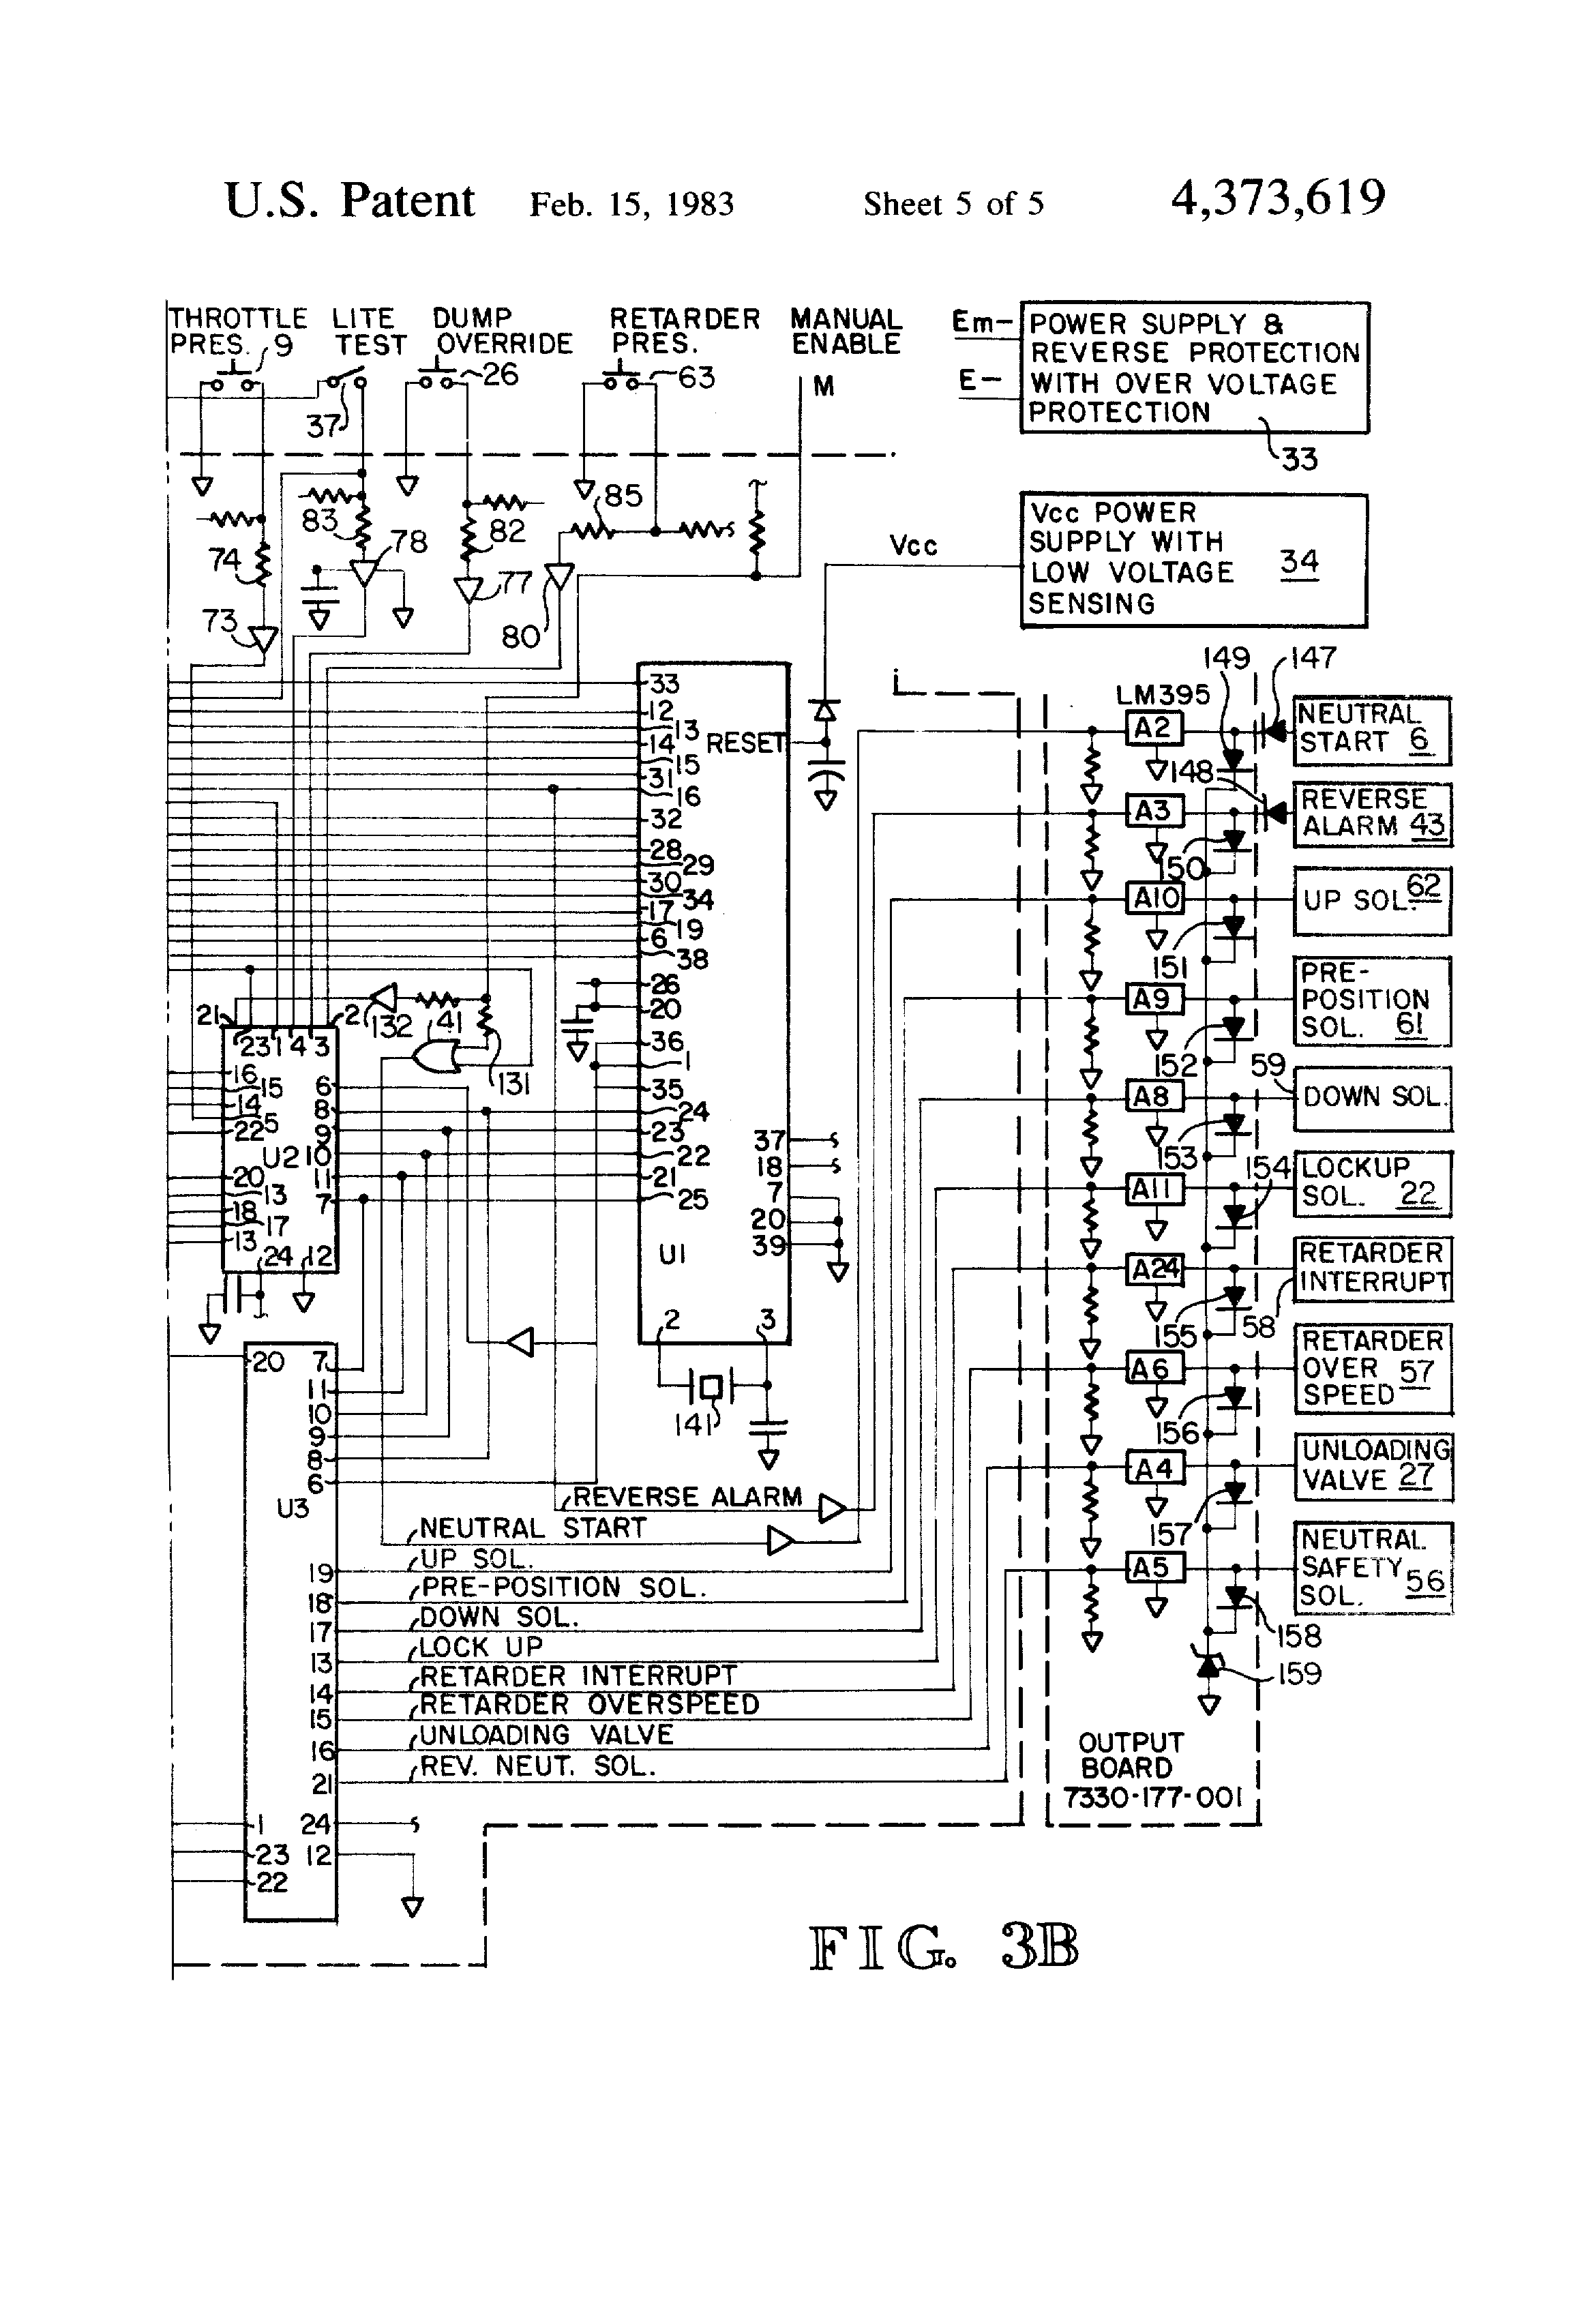 US4373619 5 hino wiring diagram wiringdiagrams hino wiring diagram schematic at n-0.co